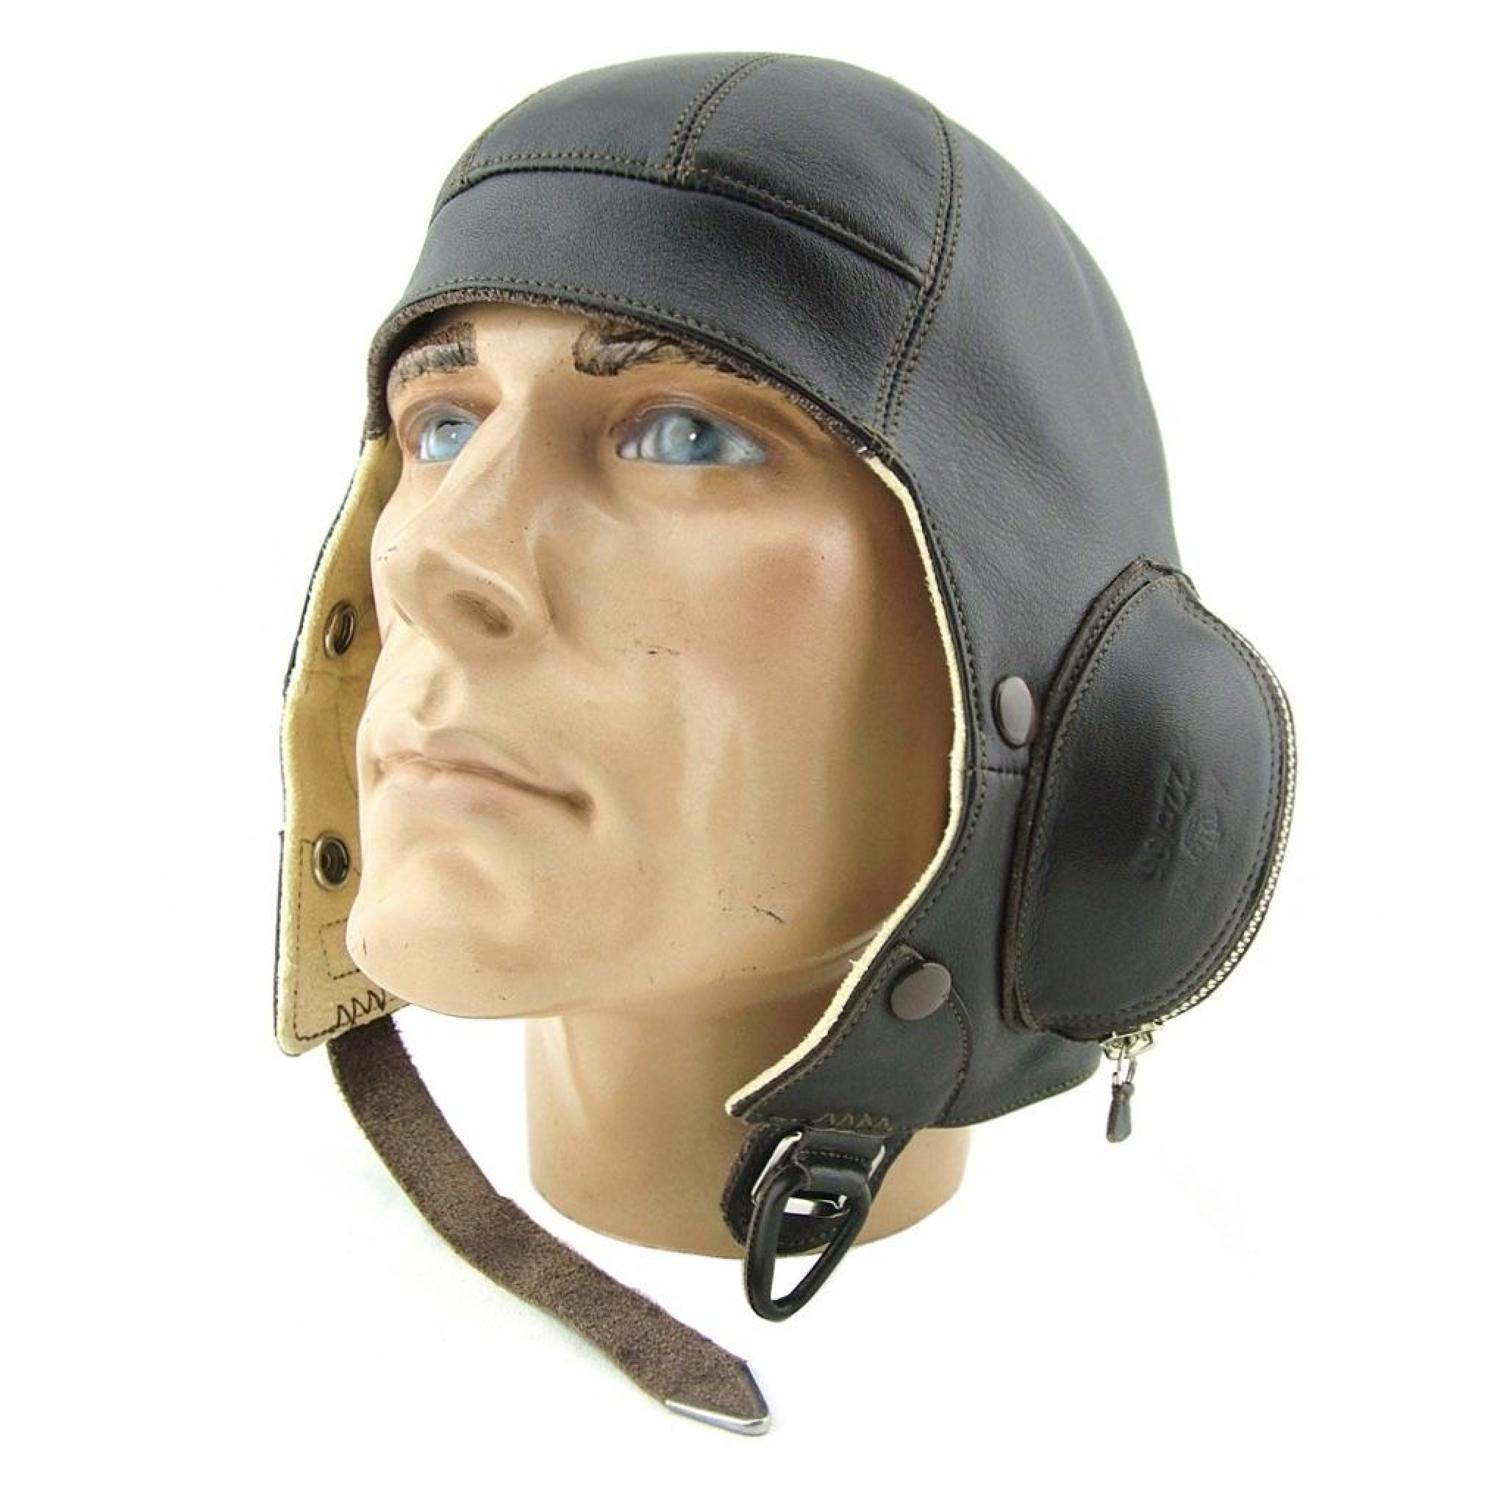 RAF B-type flying helmet - reproduction